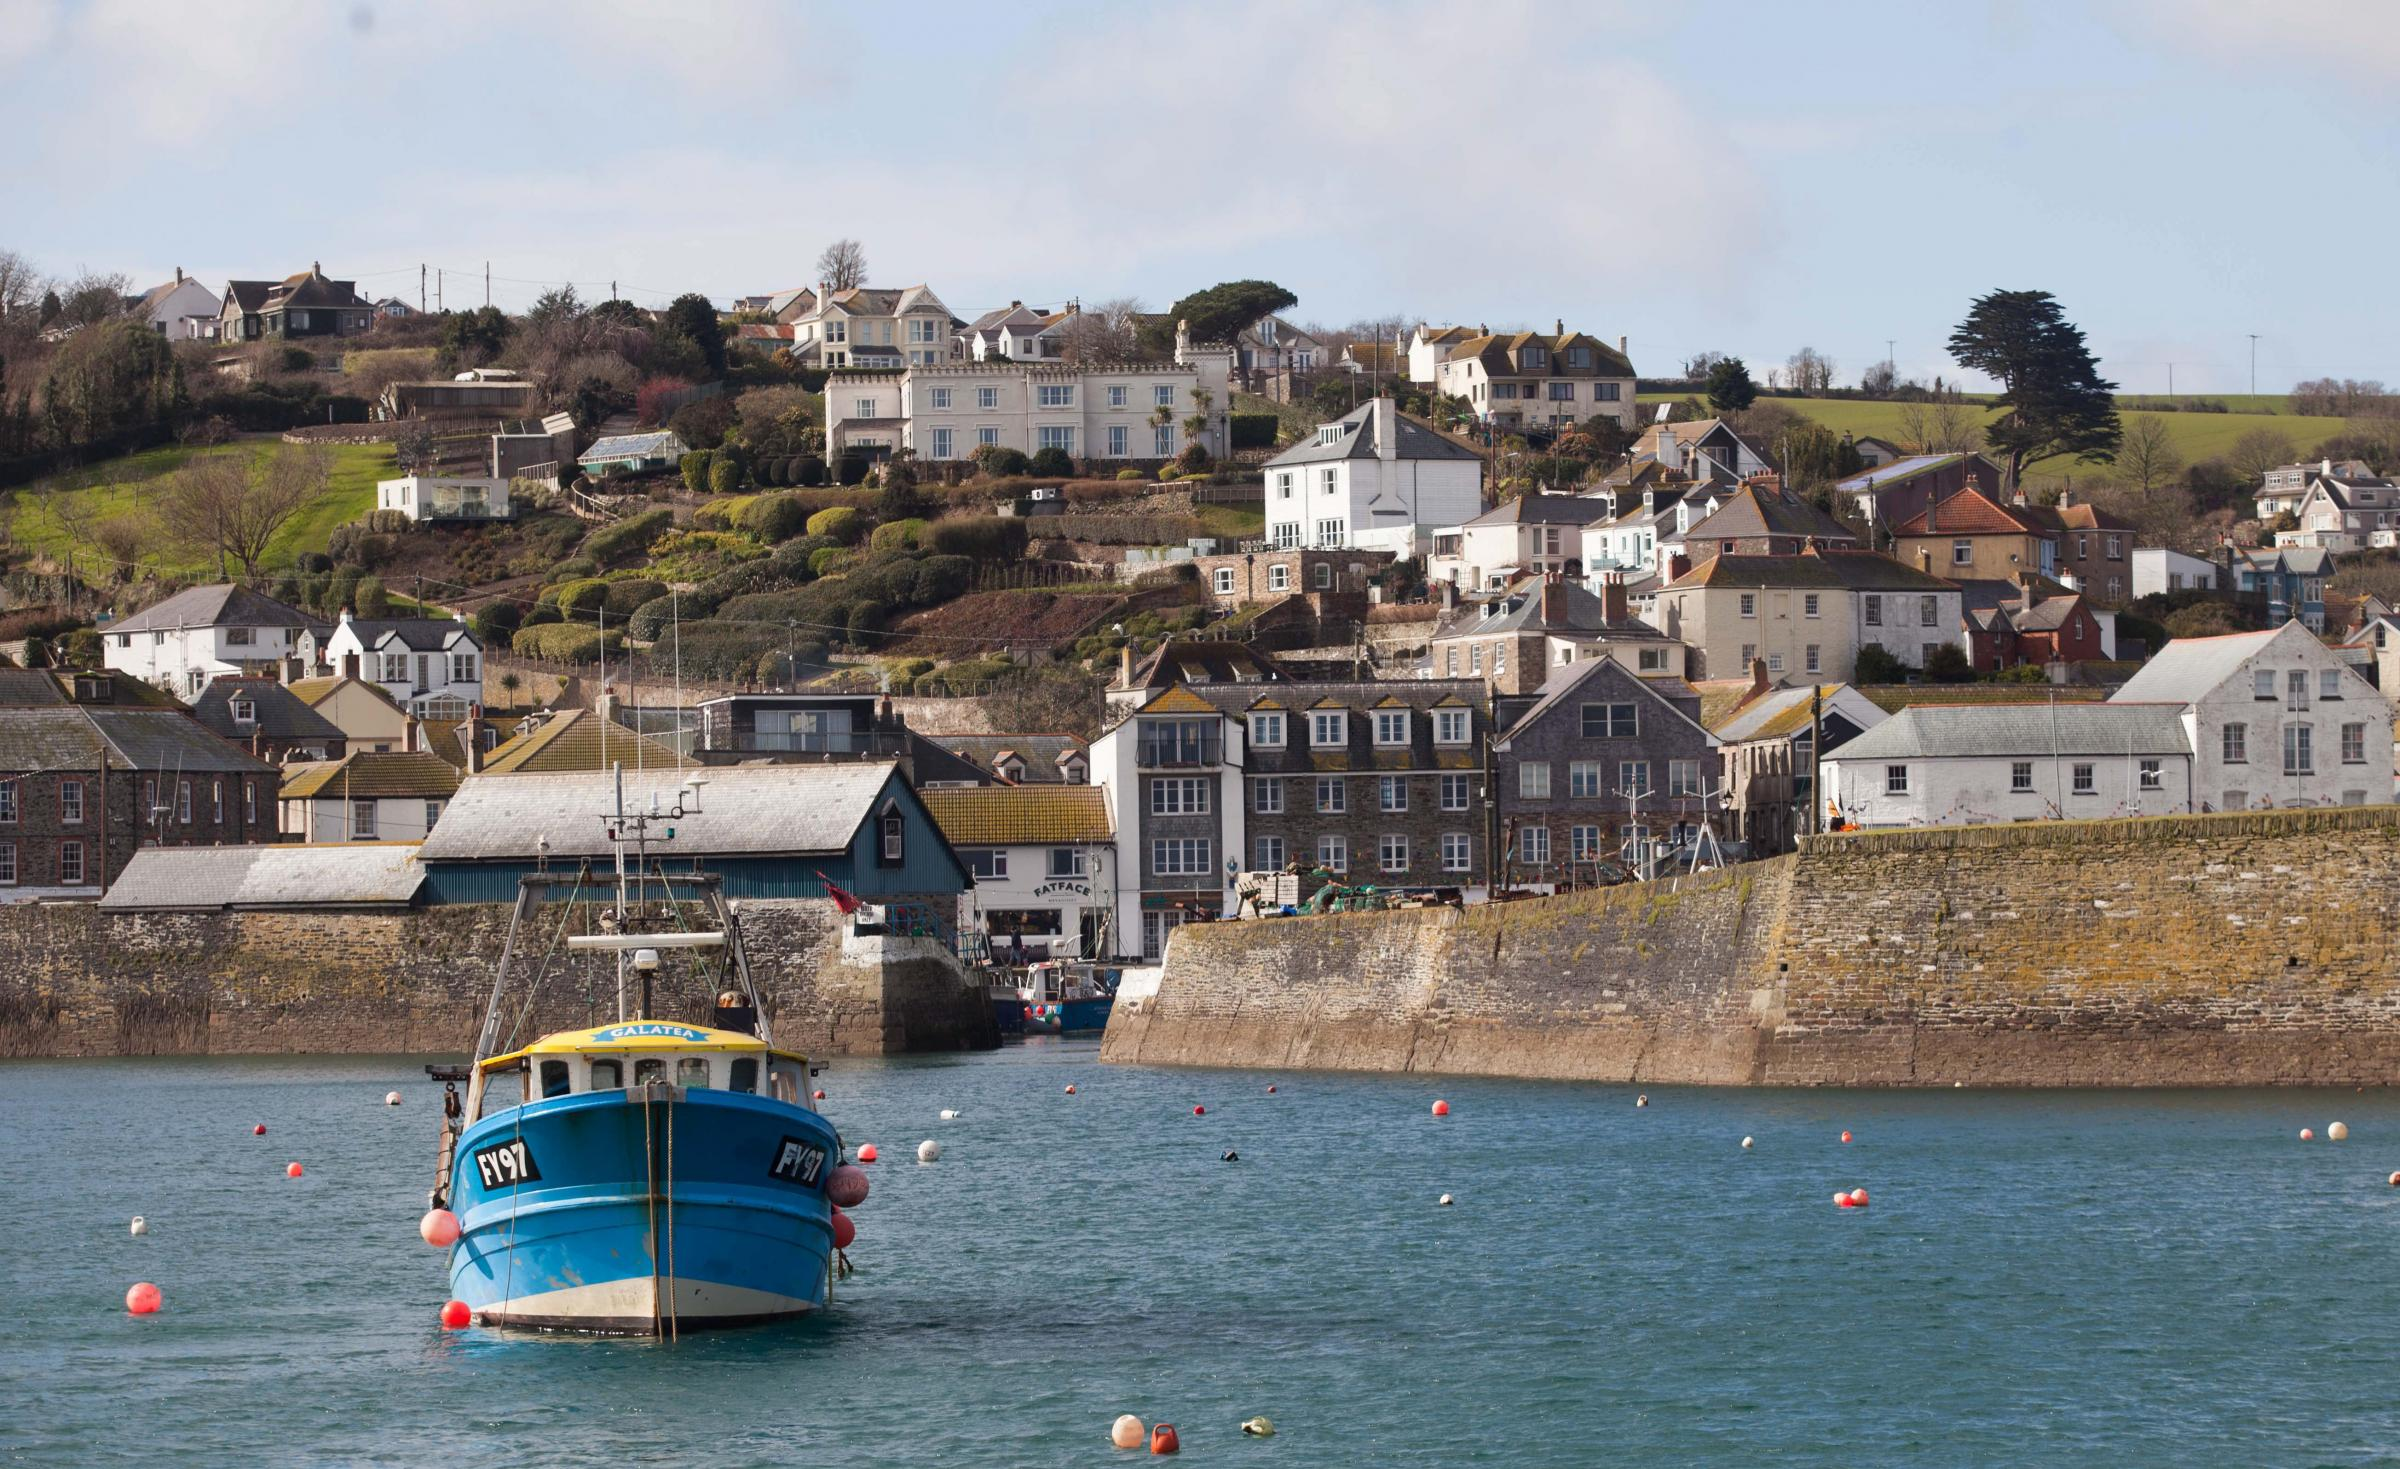 SECOND HOME BAN: Mevagissey, in Cornwall, where locals who have been priced out of their pretty fishing village have voted to ban second-home owners from buying new builds in a landslide victory. Picture: SWNS